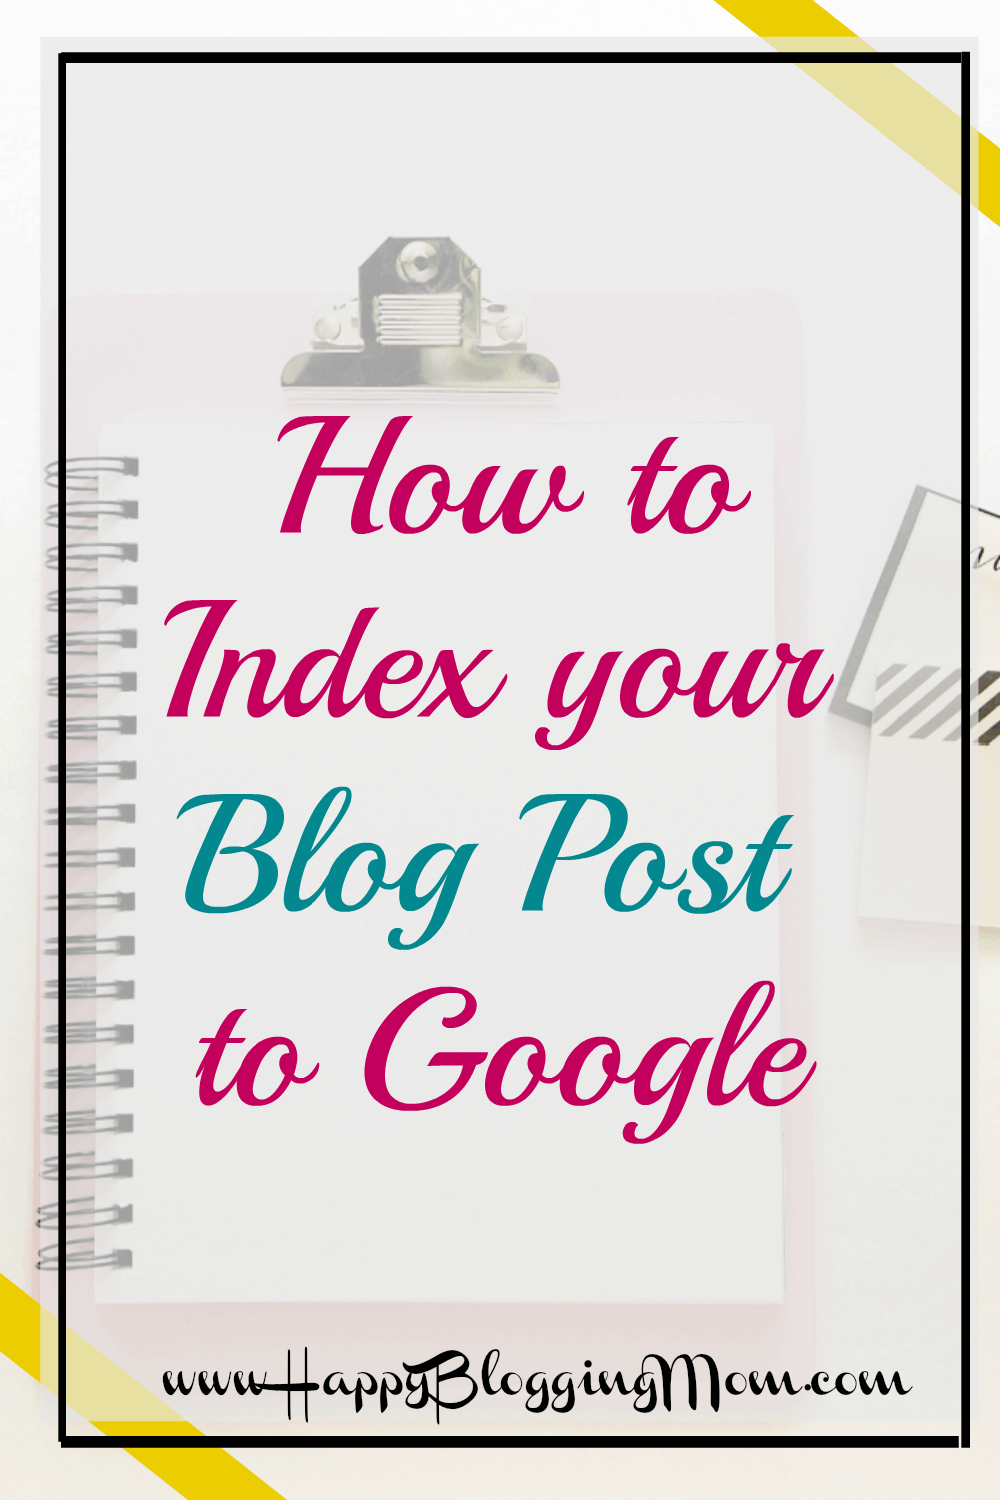 How to index your blog post to google